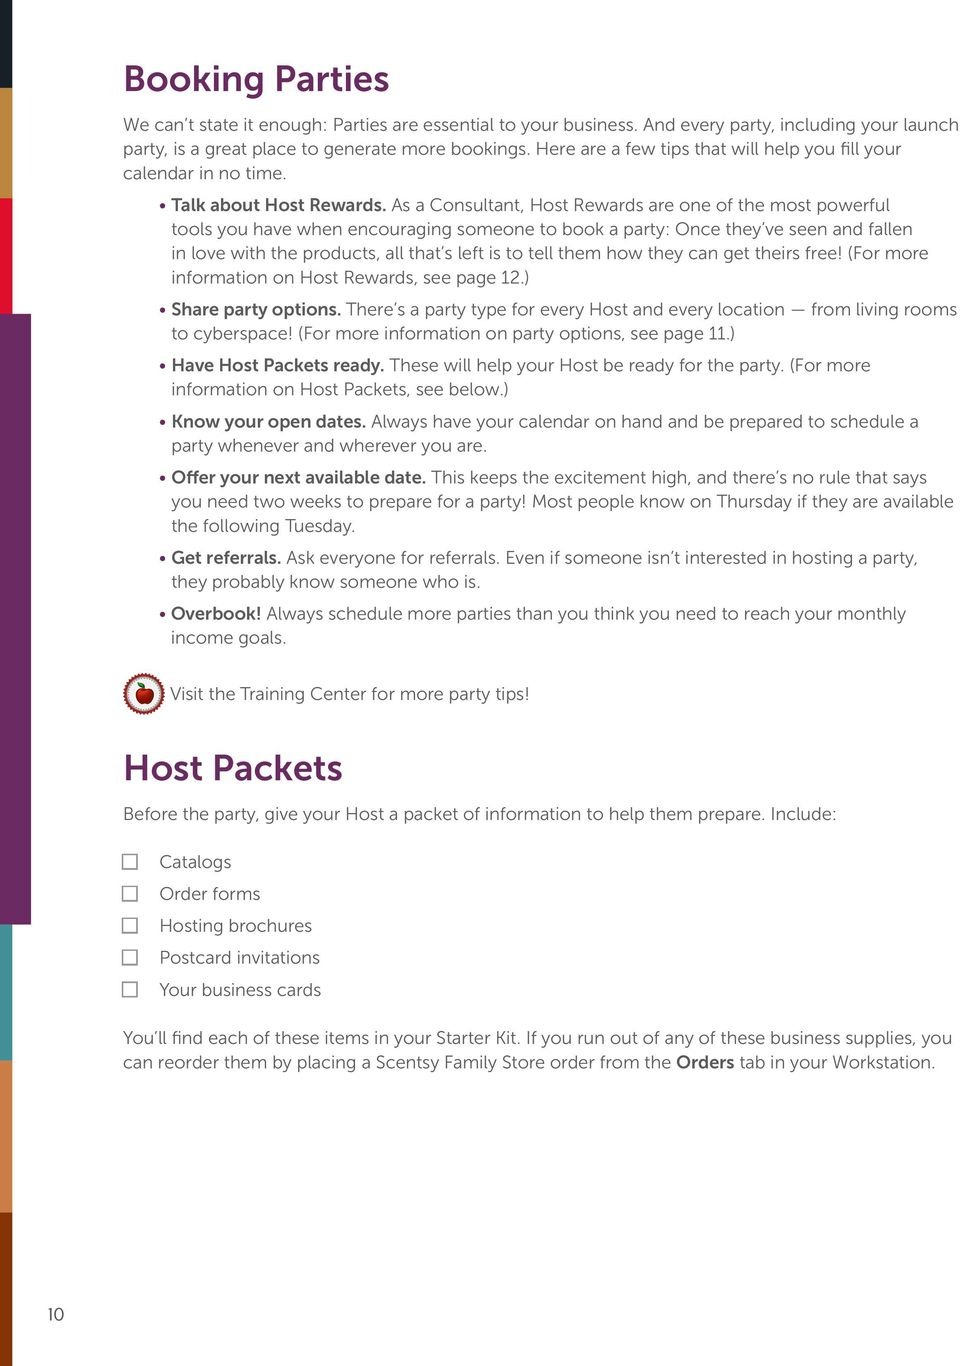 Scentsy Family Consultant Guide Your Journey Starts Here United